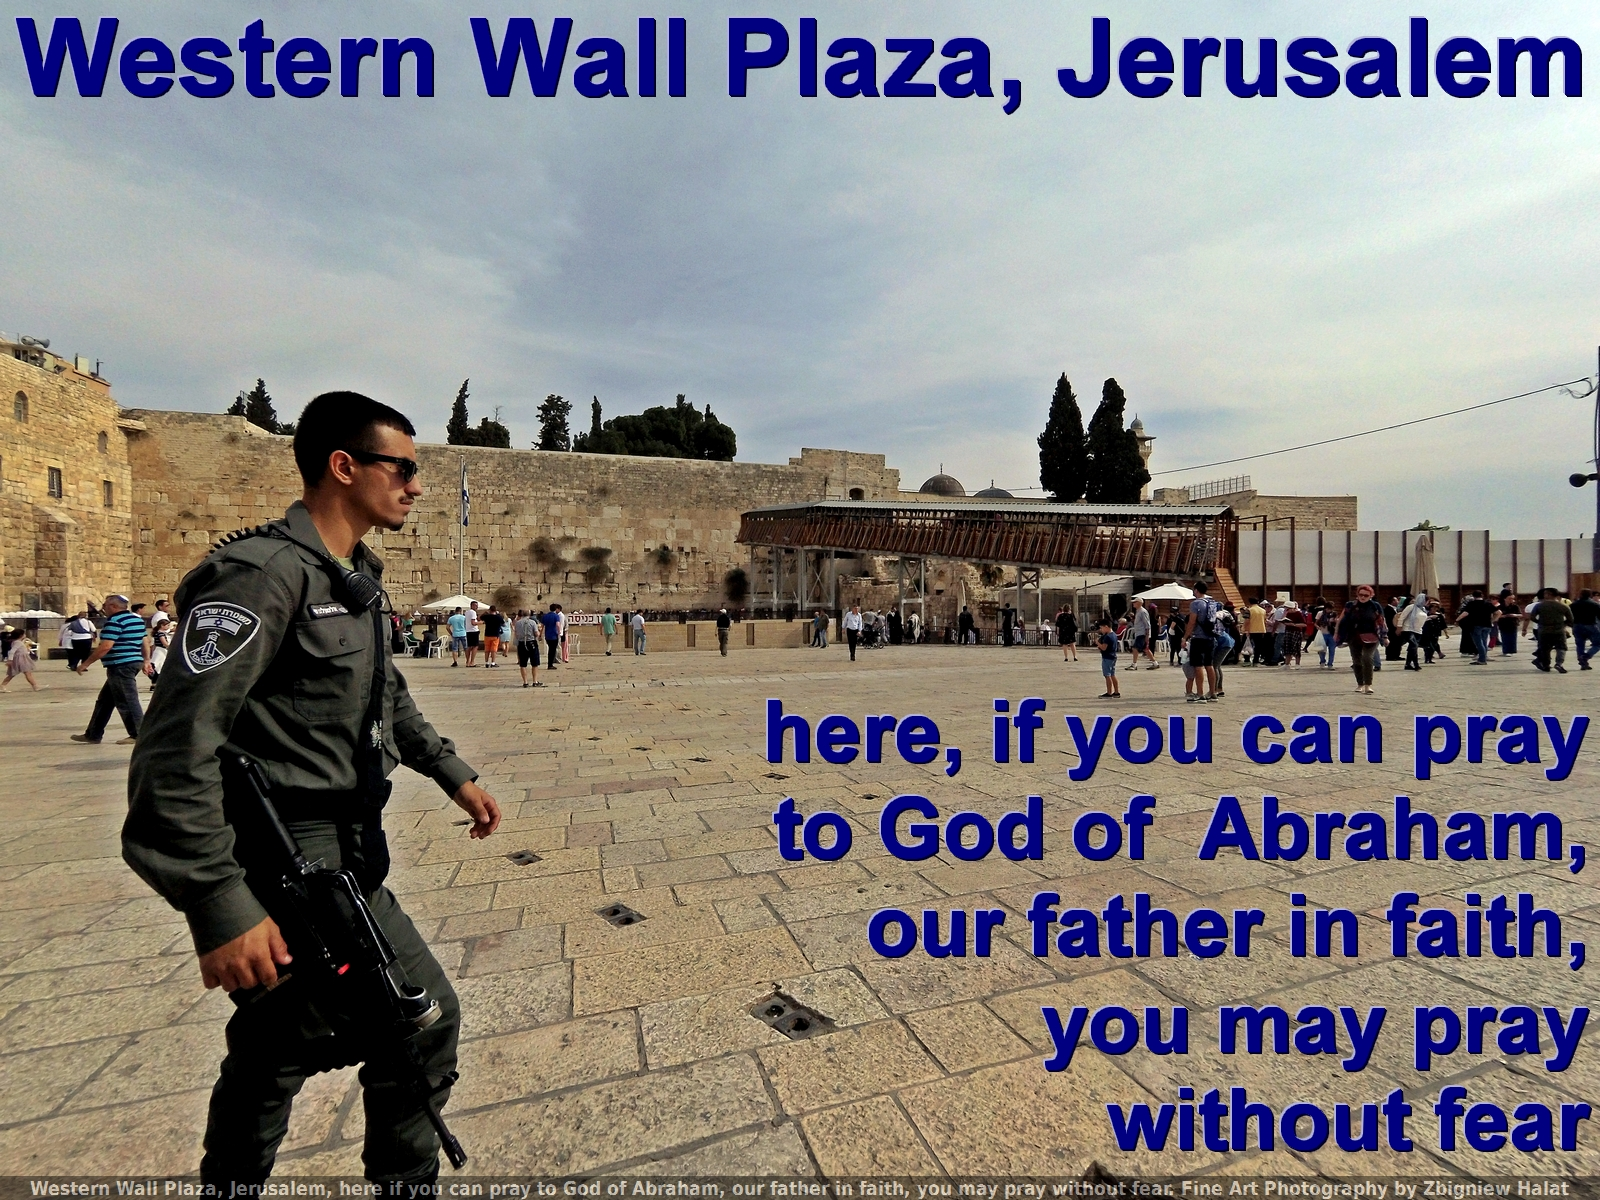 Western Wall Plaza, Jerusalem, here if you can pray to God of Abraham, our father in faith, you may pray without fear. Fine Art Photography by Zbigniew Halat